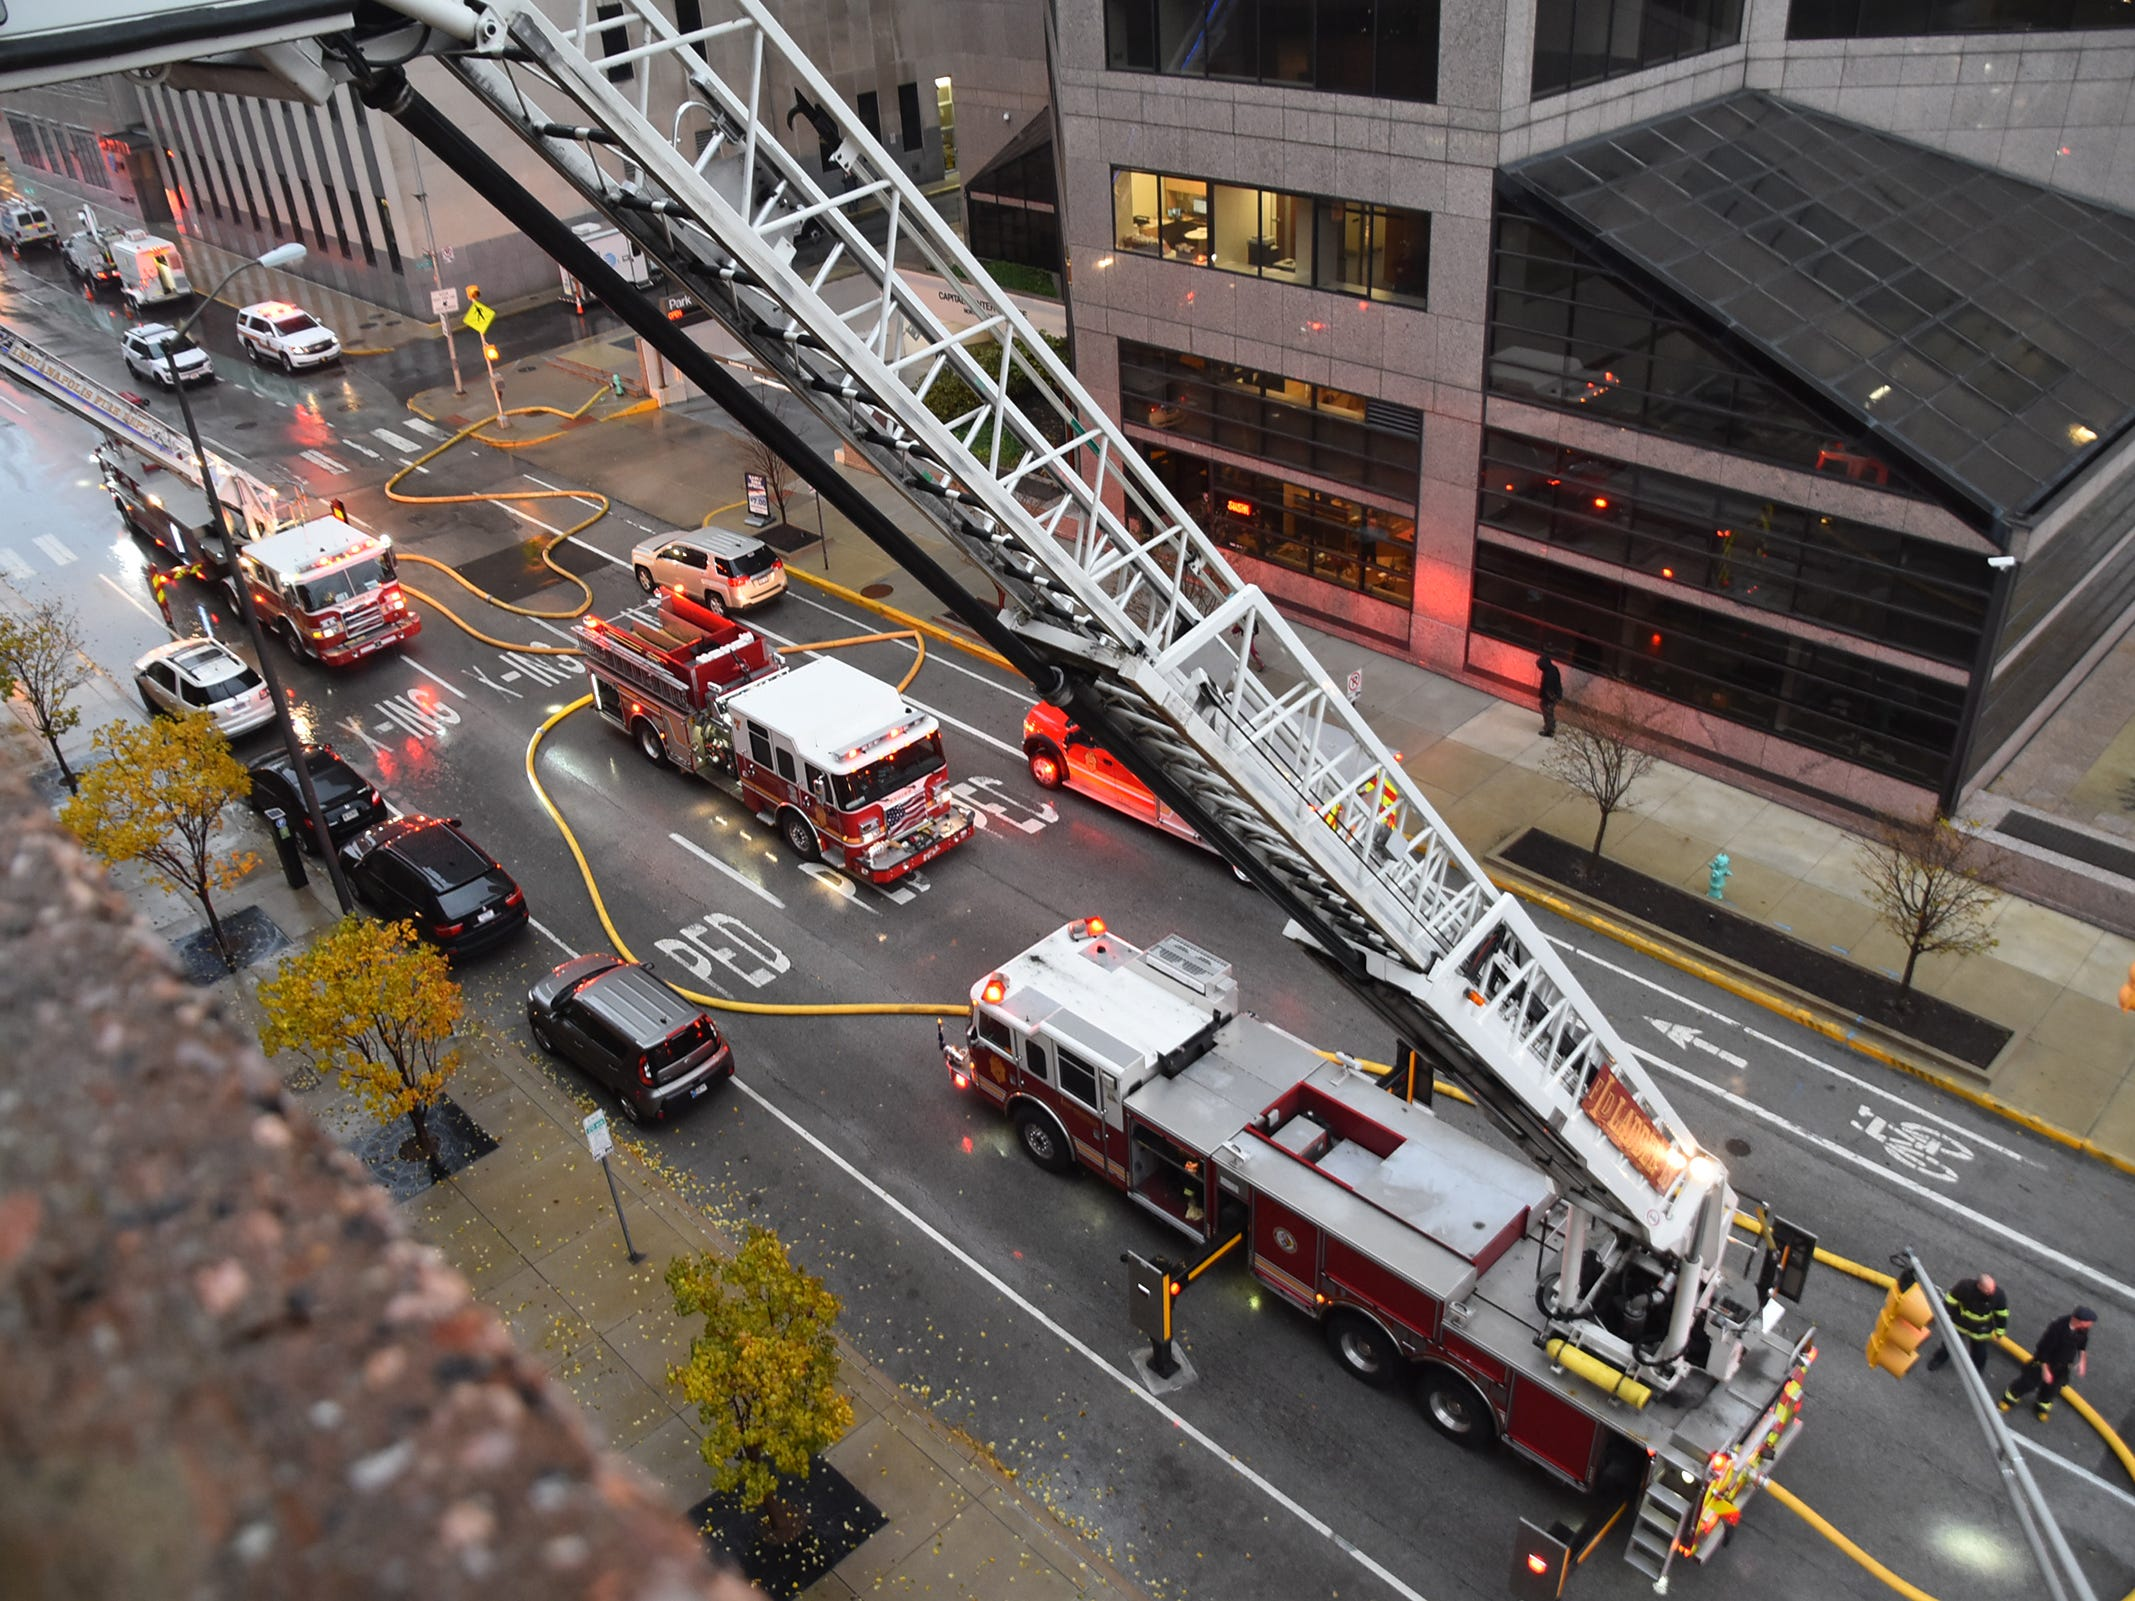 Emergency vehicles are seen down on New York Street as IFD fights a car fire in a parking garage at Illinois and New York, Thursday, Nov. 1, 2018.